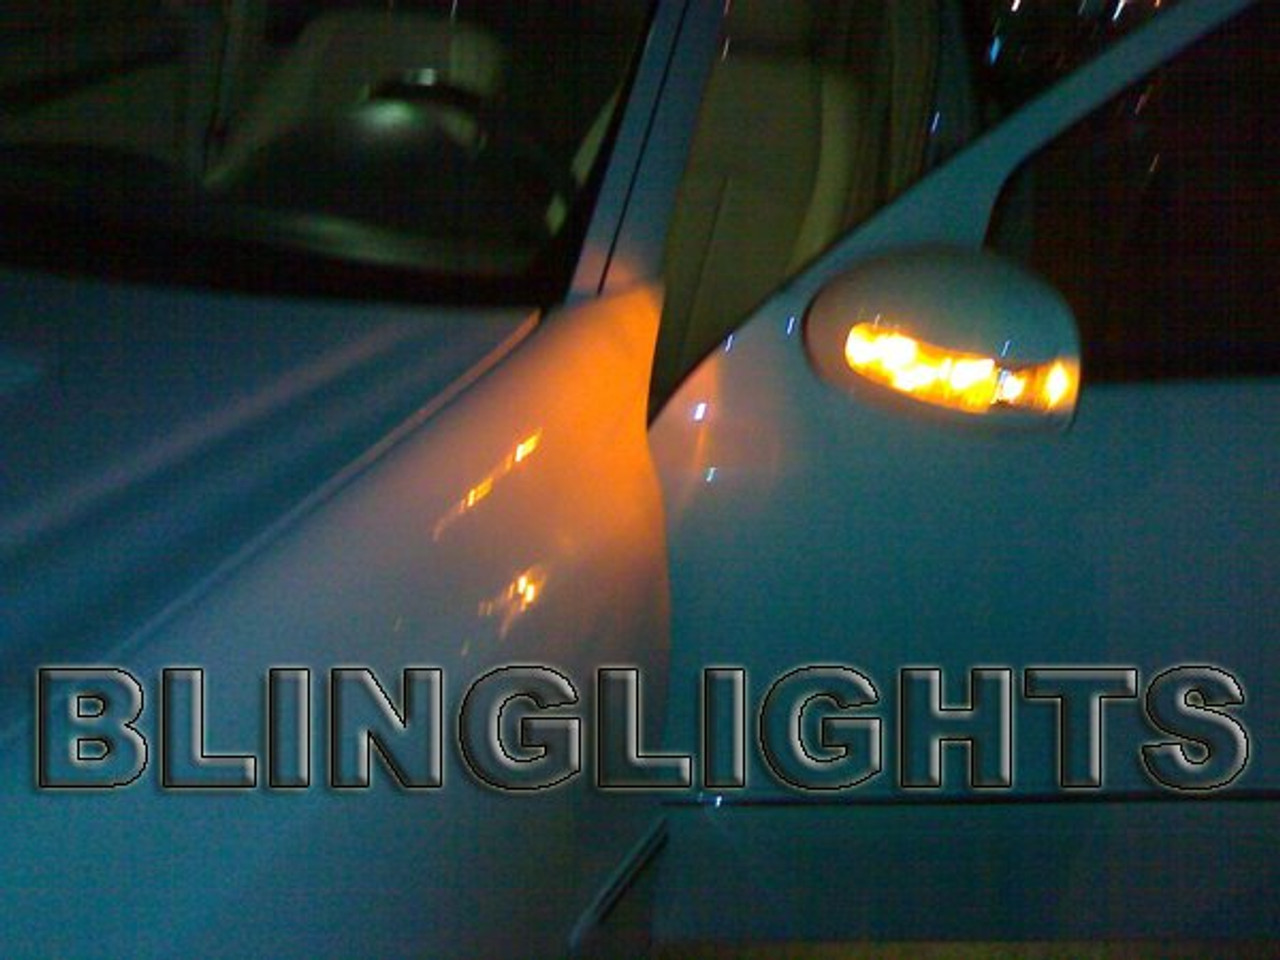 1998 1999 2000 2001 2002 2003 2004 Pontiac Montana Mirrors Turnsignals Turn Signals Lights Lamps